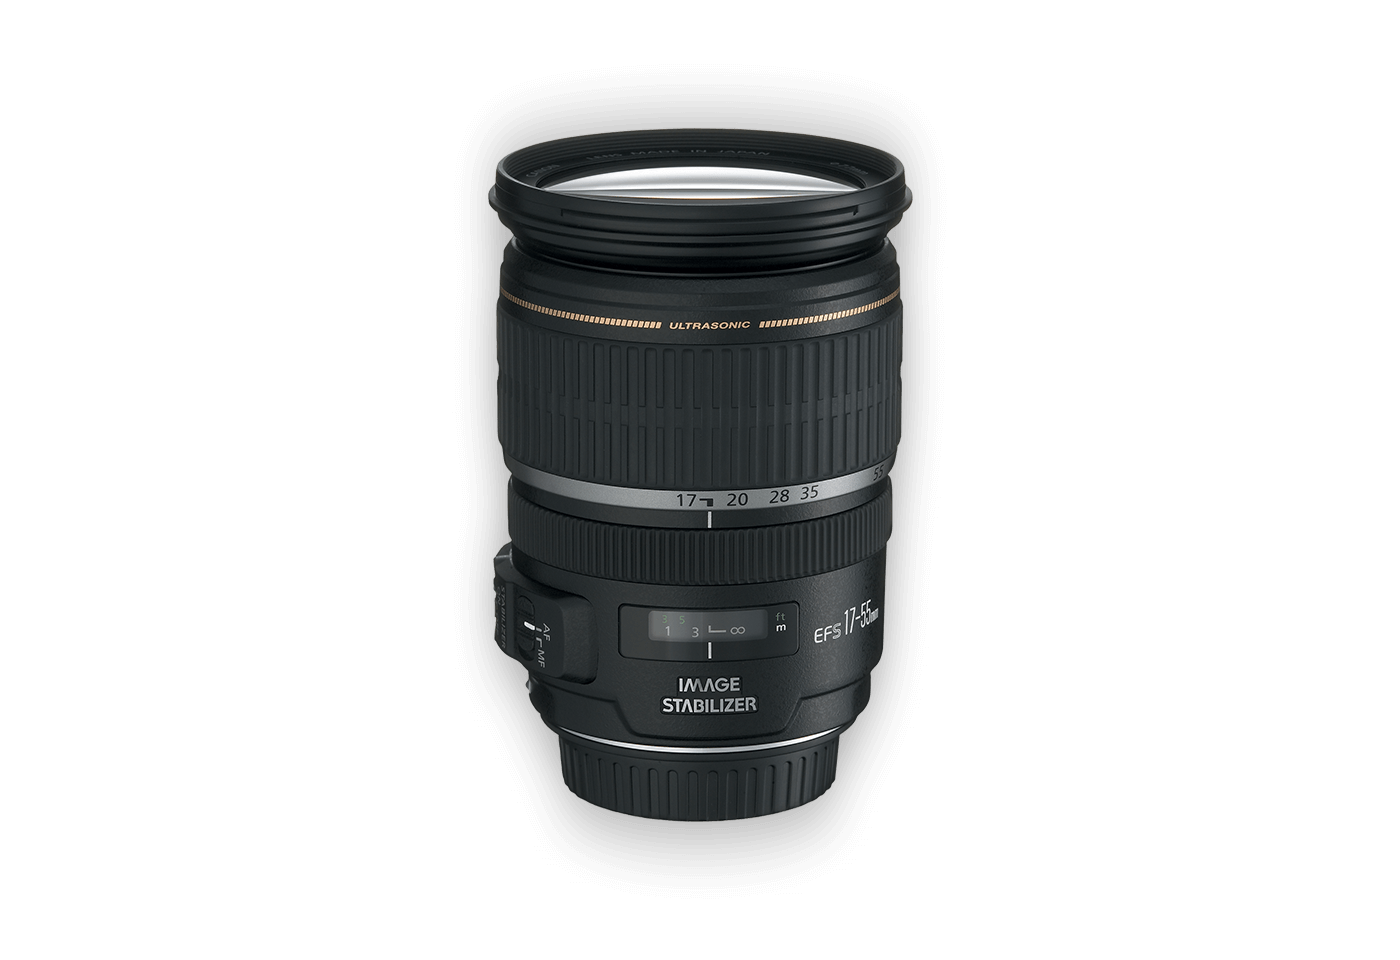 ef s 17 55mm f 2.8 is usm